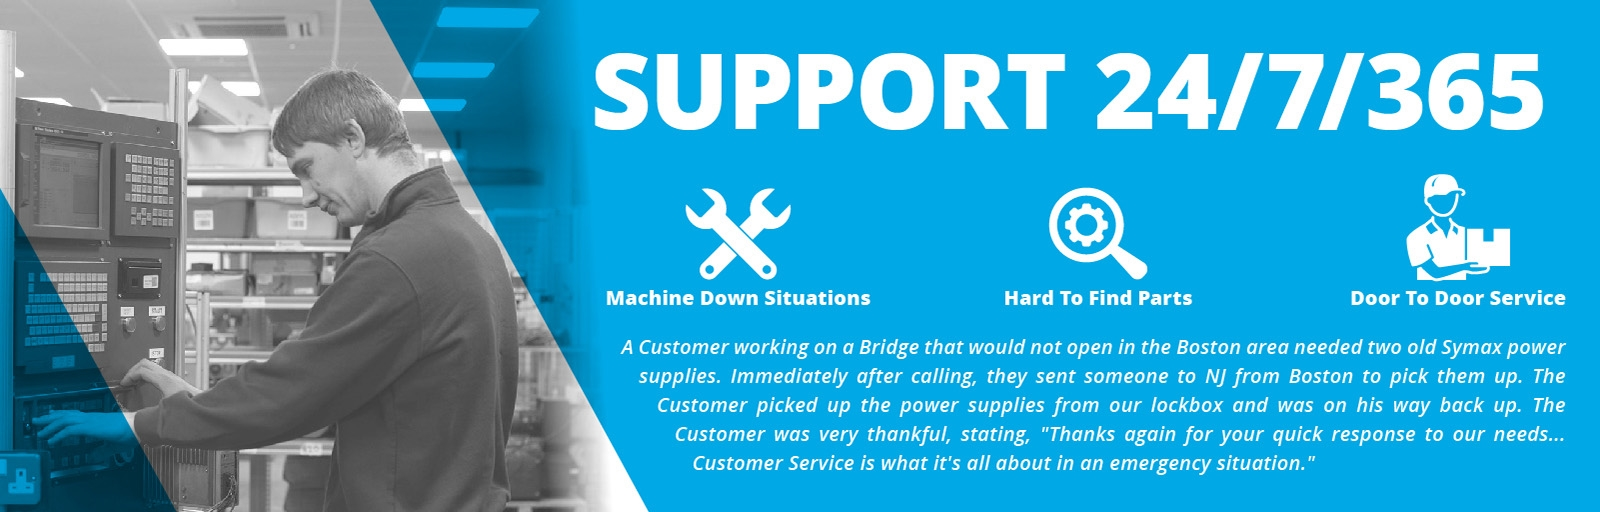 We can help 24/7/365. We're here for you - emergency services, rushing, off hour support.